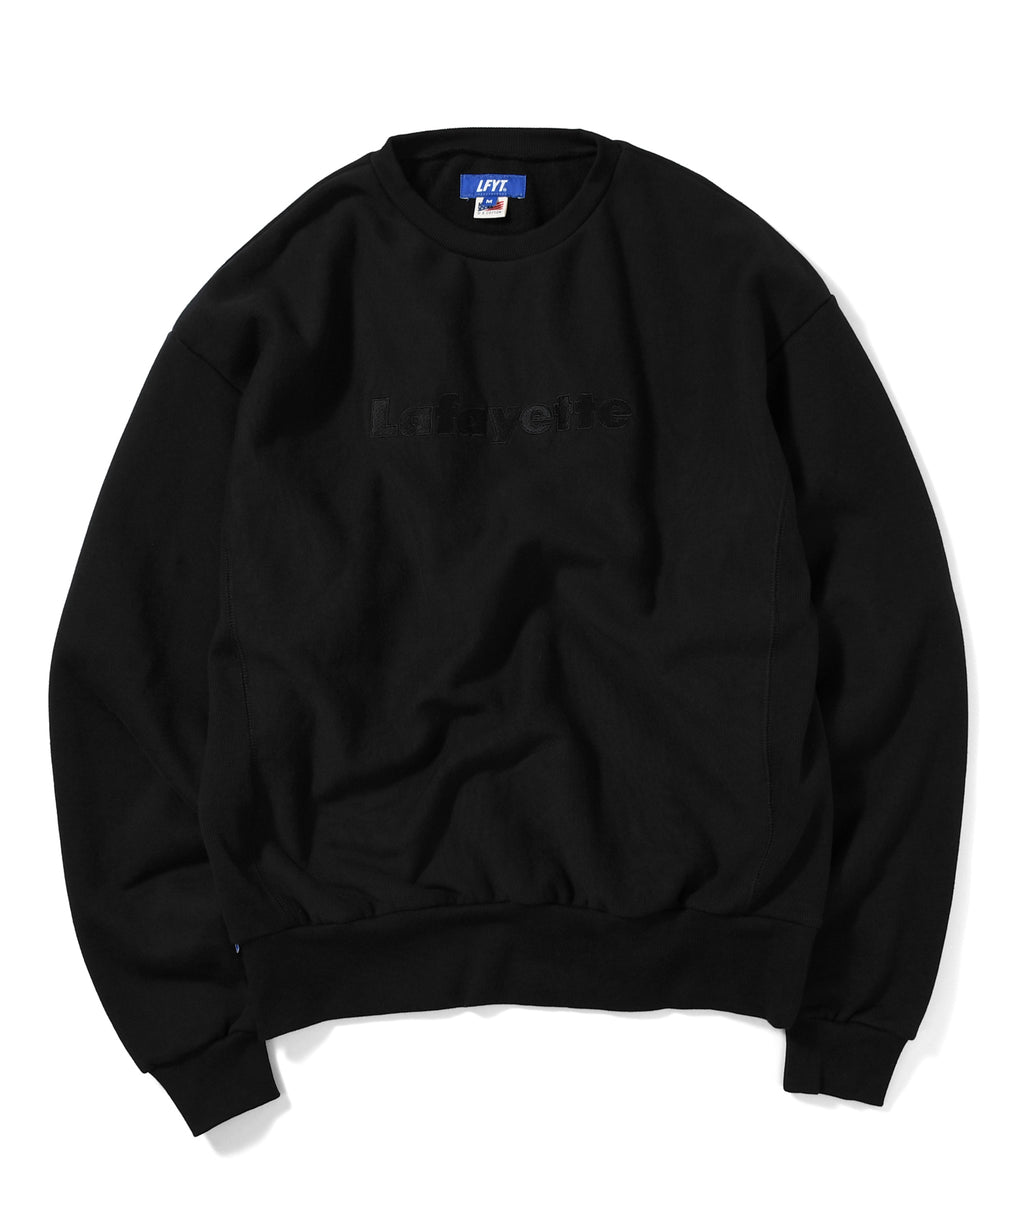 TONAL LOGO US COTTON CREWNECK SWEATSHIRT BLACK LA200702